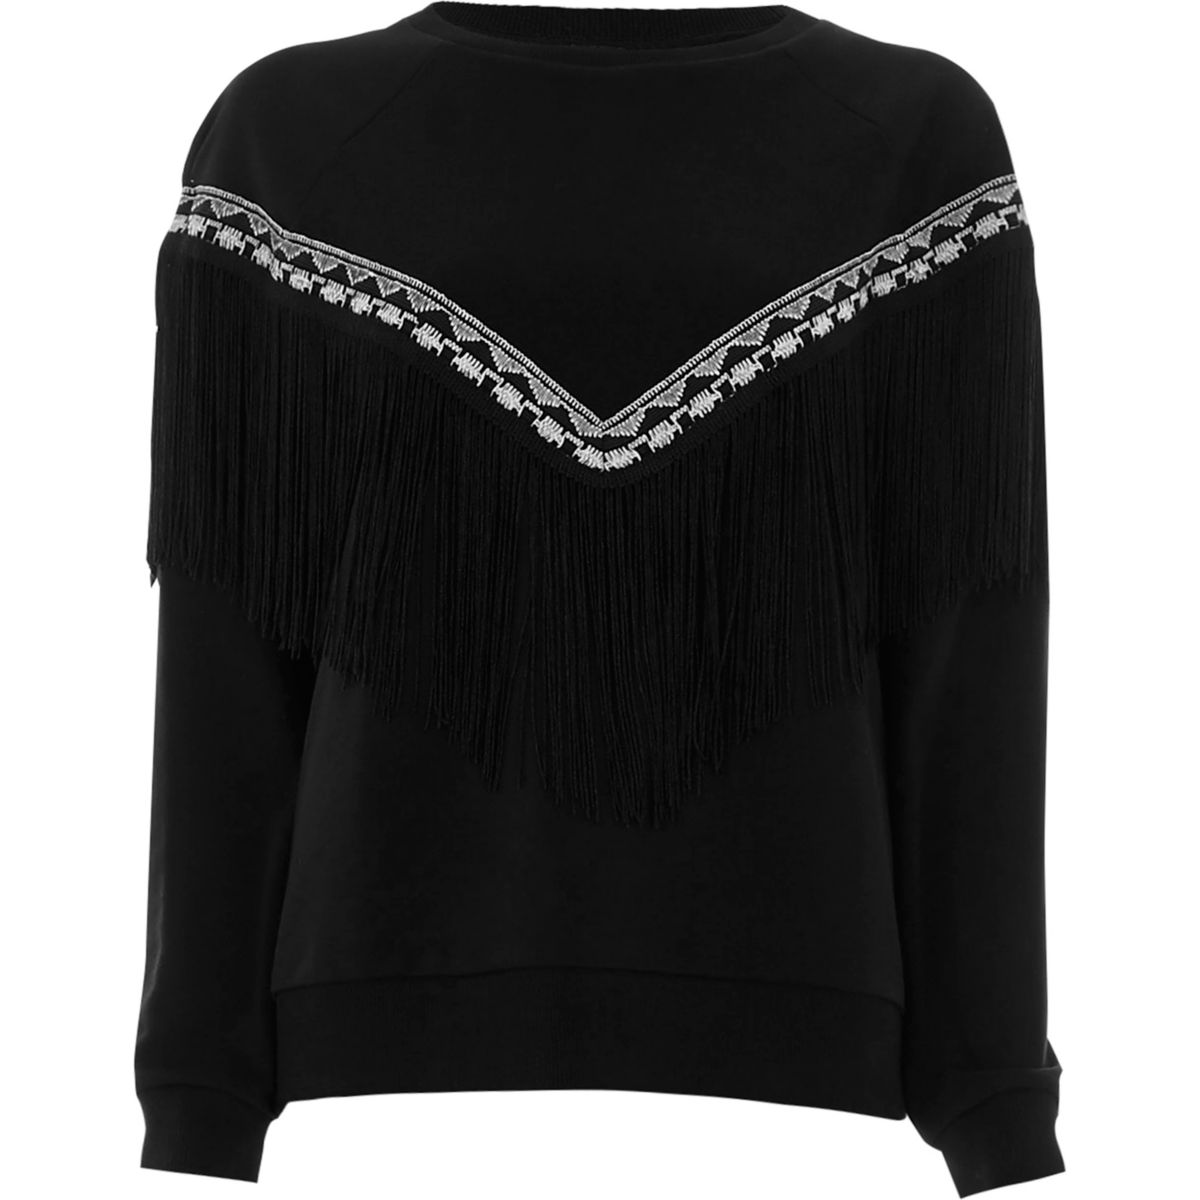 Black tassel front embroidered sweatshirt